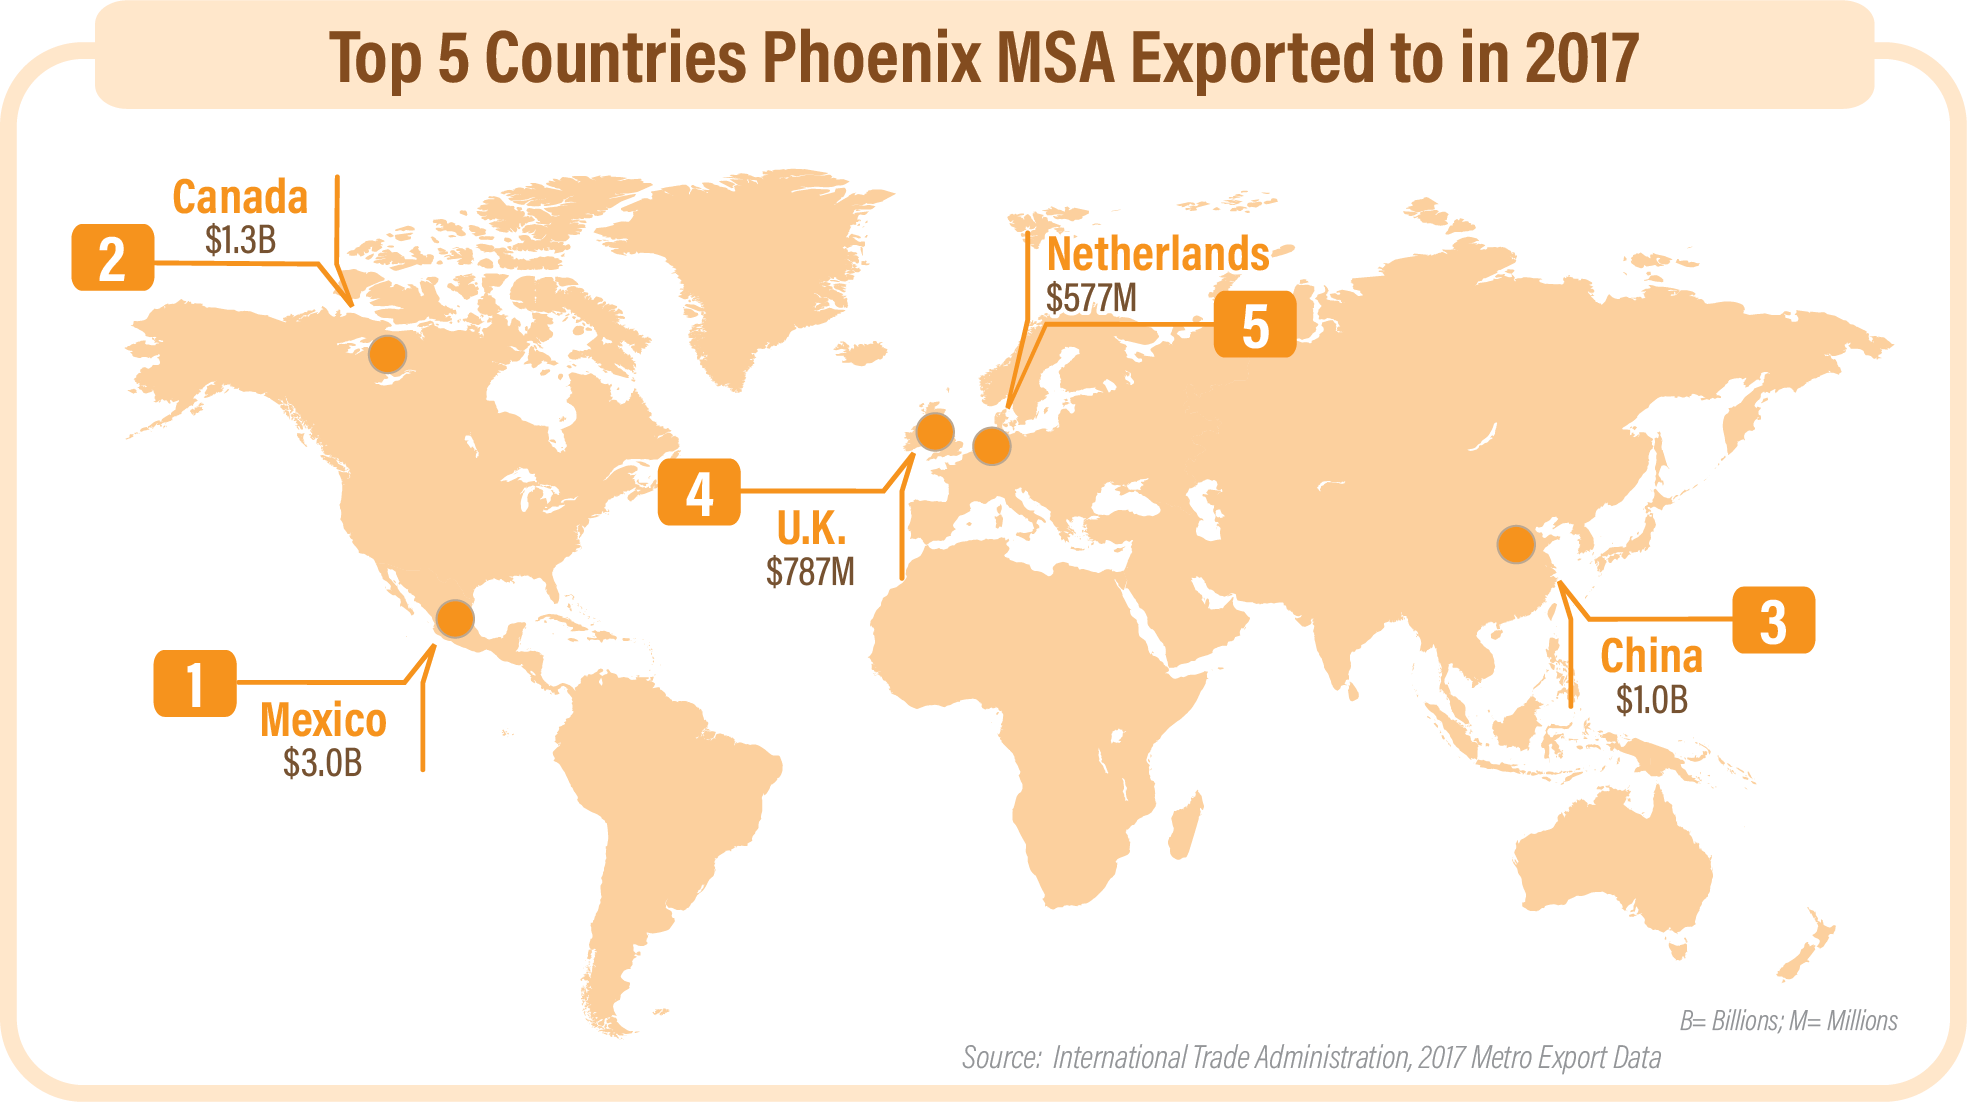 Top 5 Countries Phoenix MSA exported to in 2017